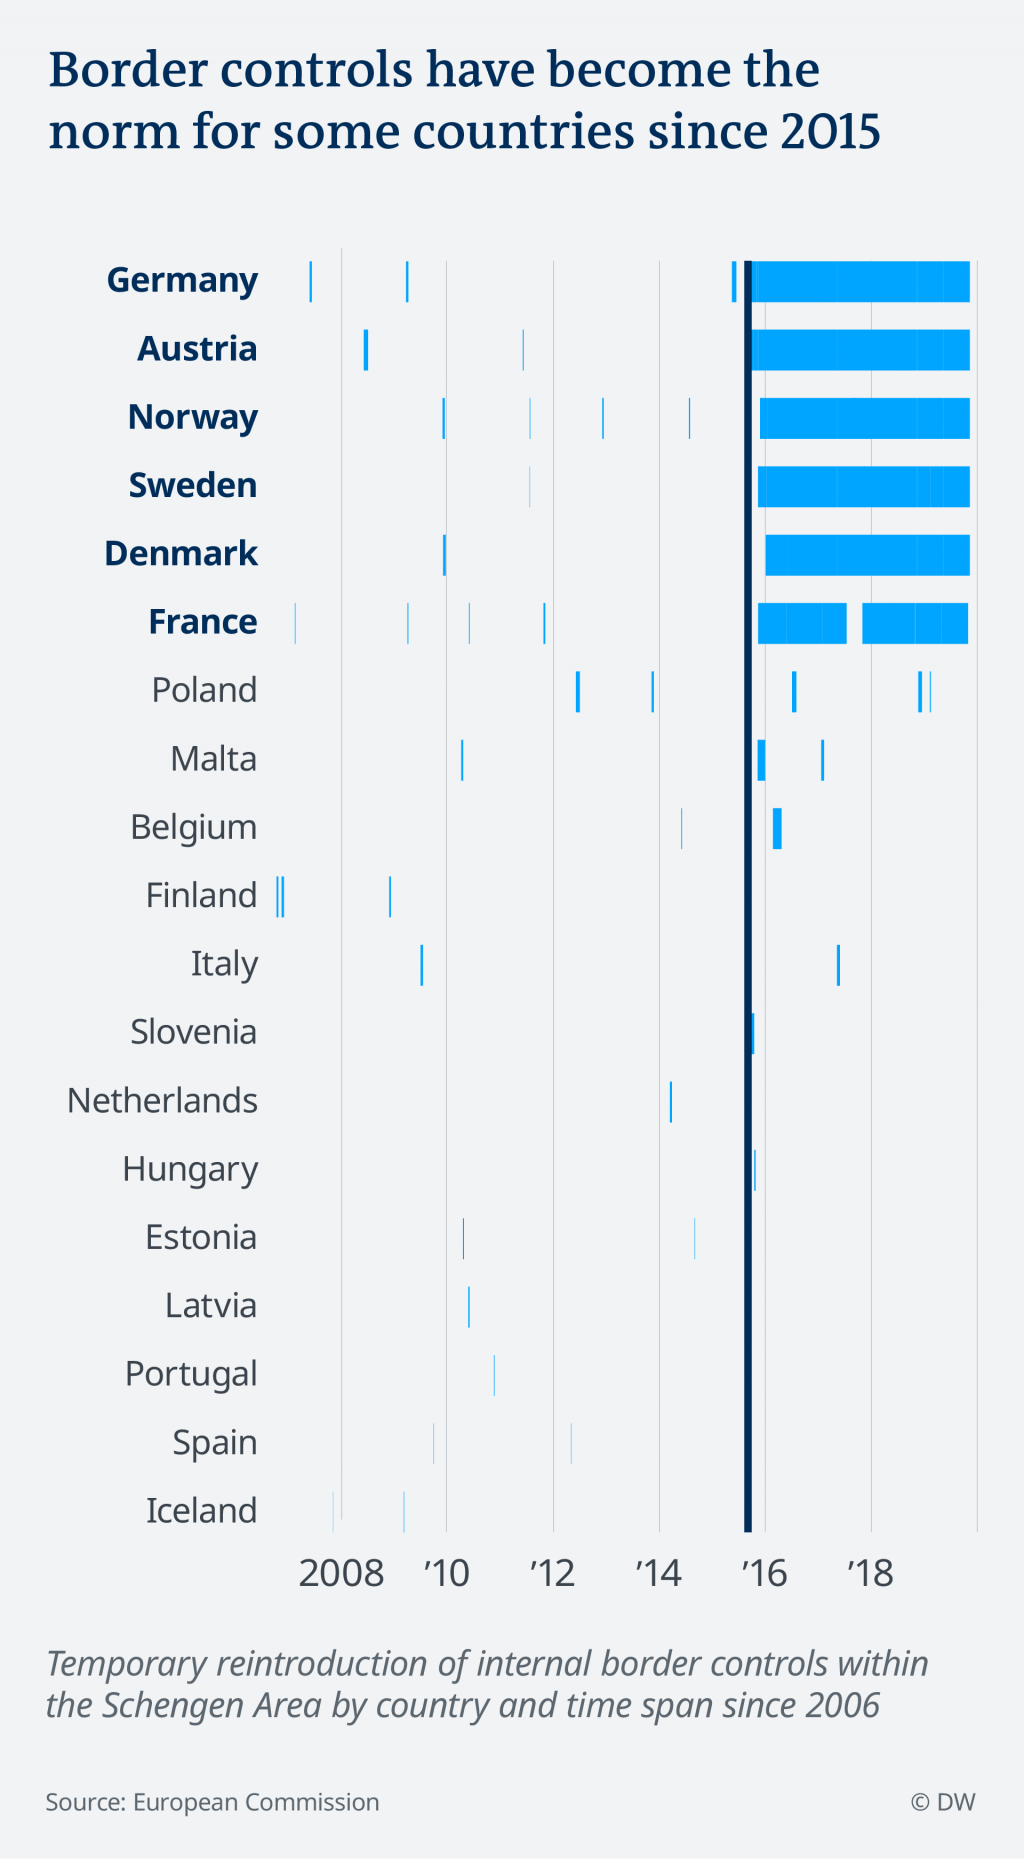 Border controls in EU countries over time | Credit: DW